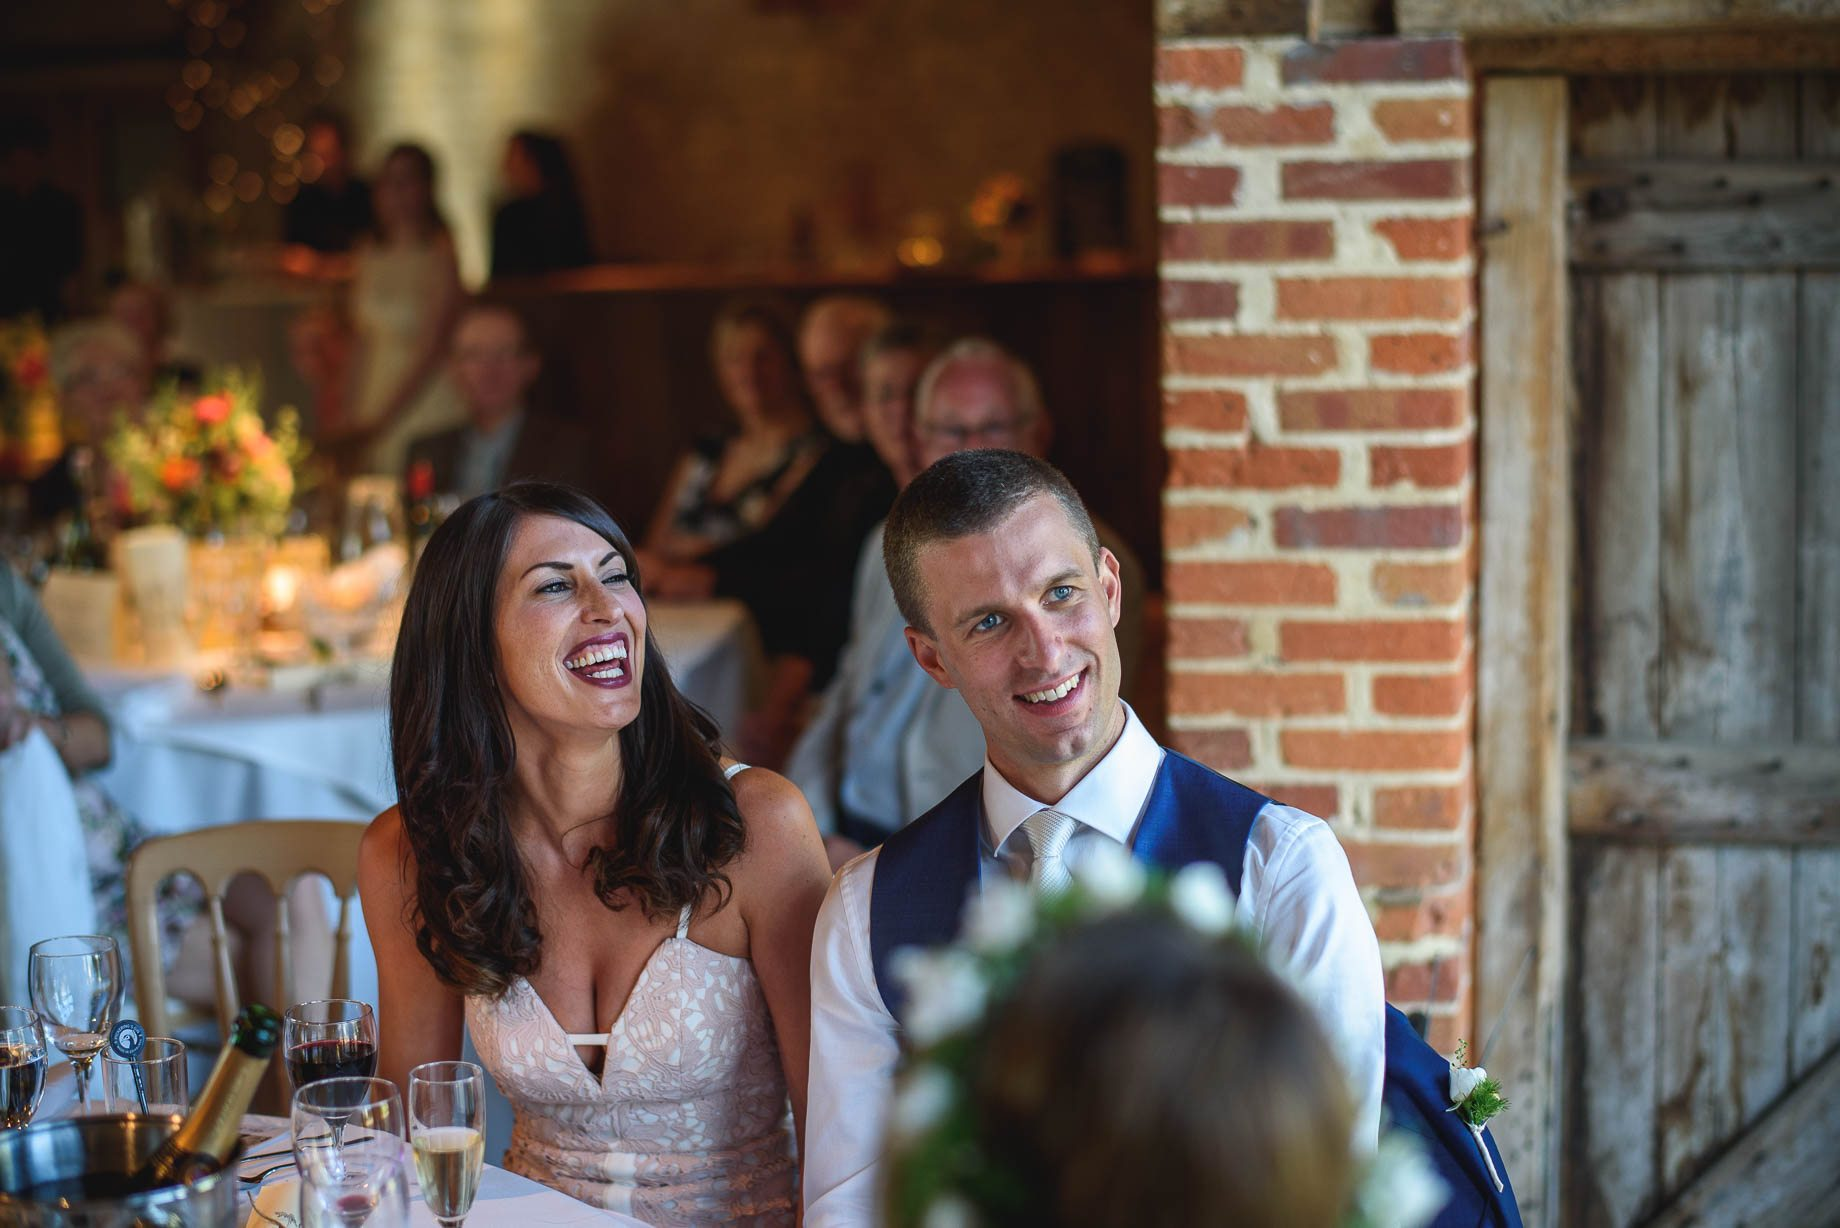 Bury Court Barn wedding photography by Guy Collier - Jo and Jamie (125 of 160)